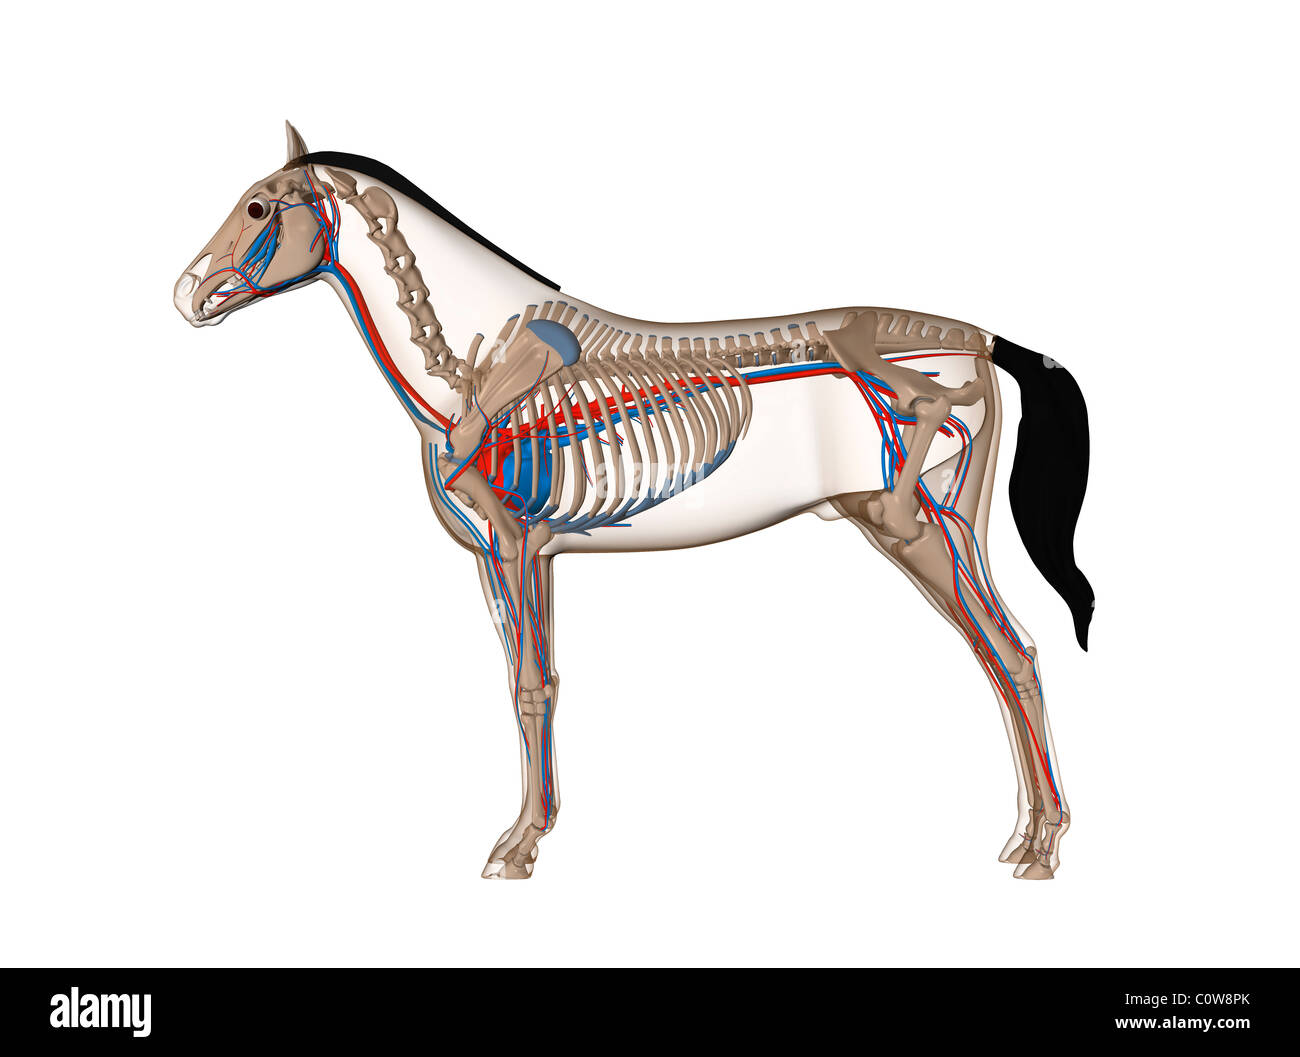 horse anatomy heart circulation Stock Photo: 34976443 - Alamy